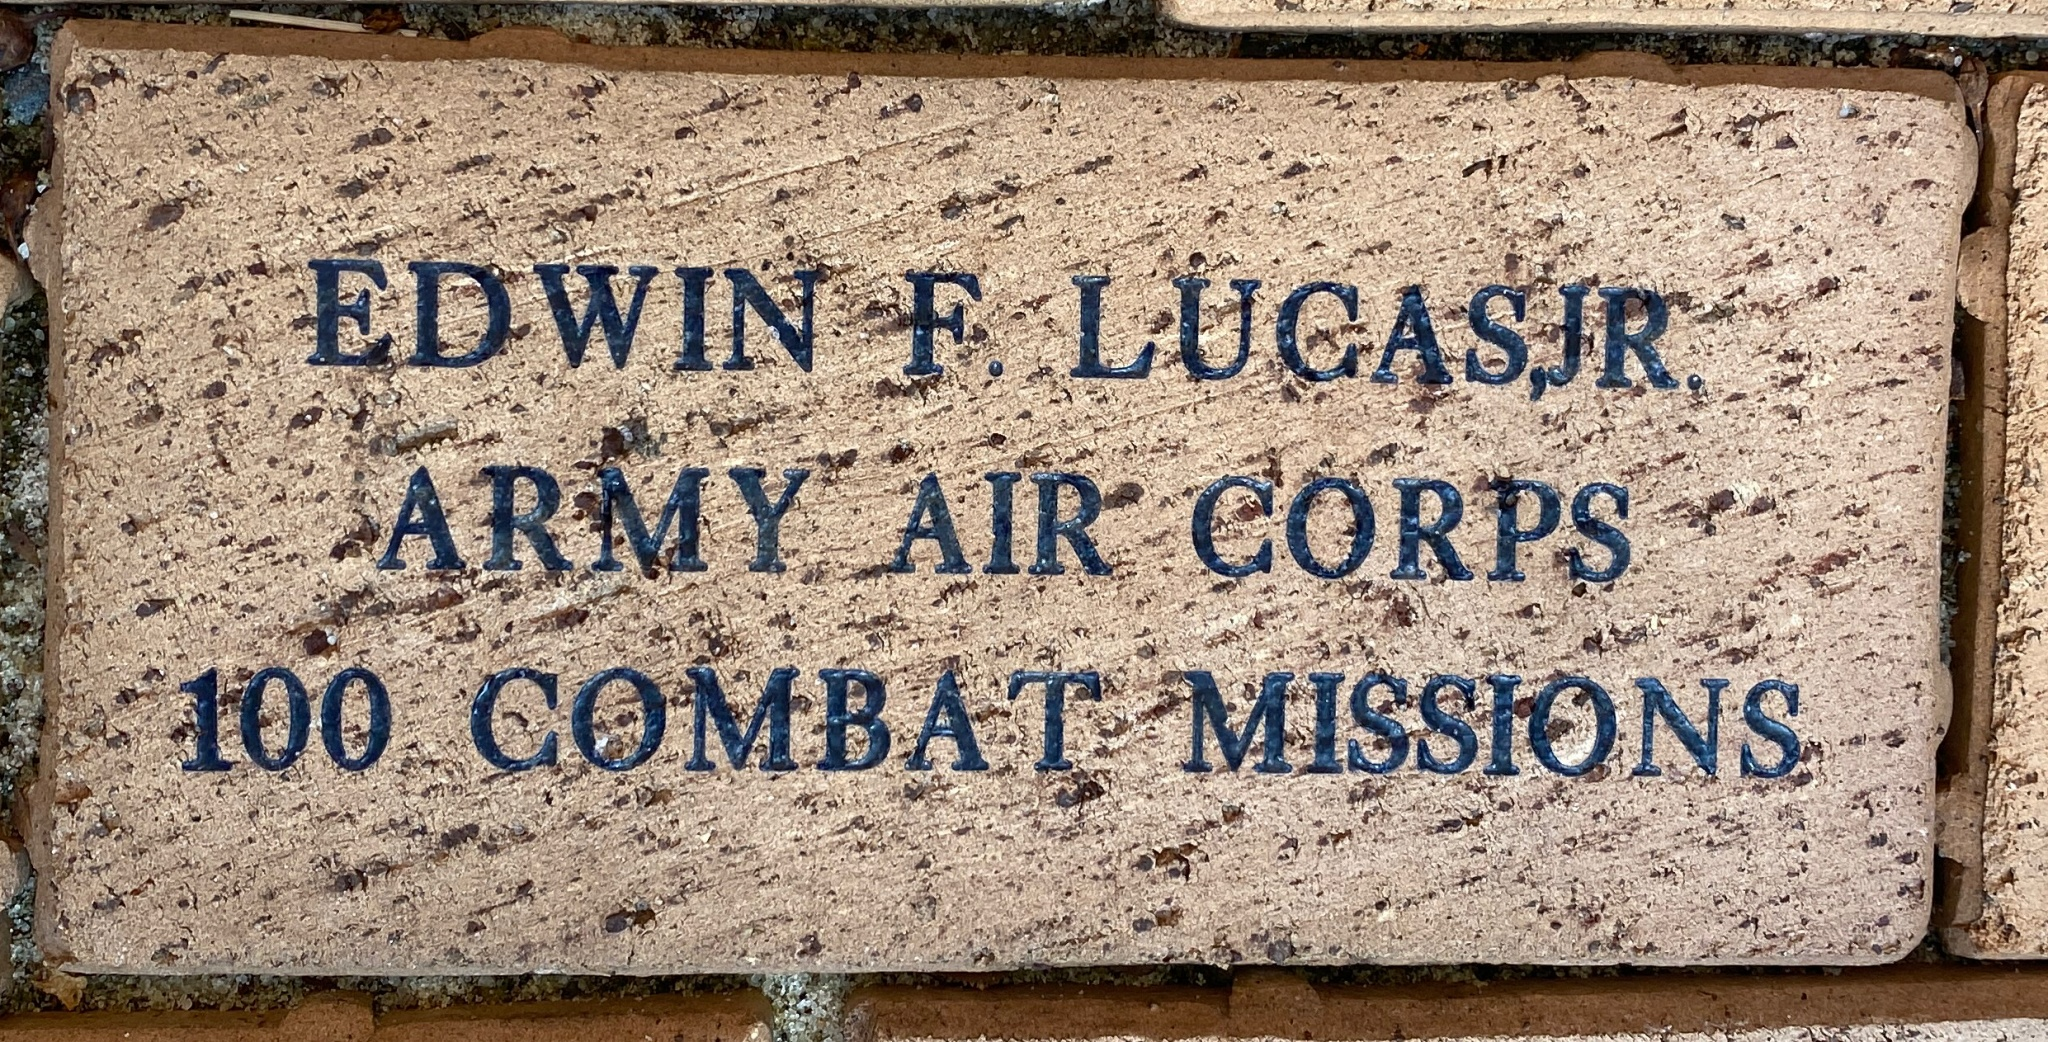 EDWIN F. LUCAS,JR. ARMY AIR CORPS 100 COMBAT MISSIONS